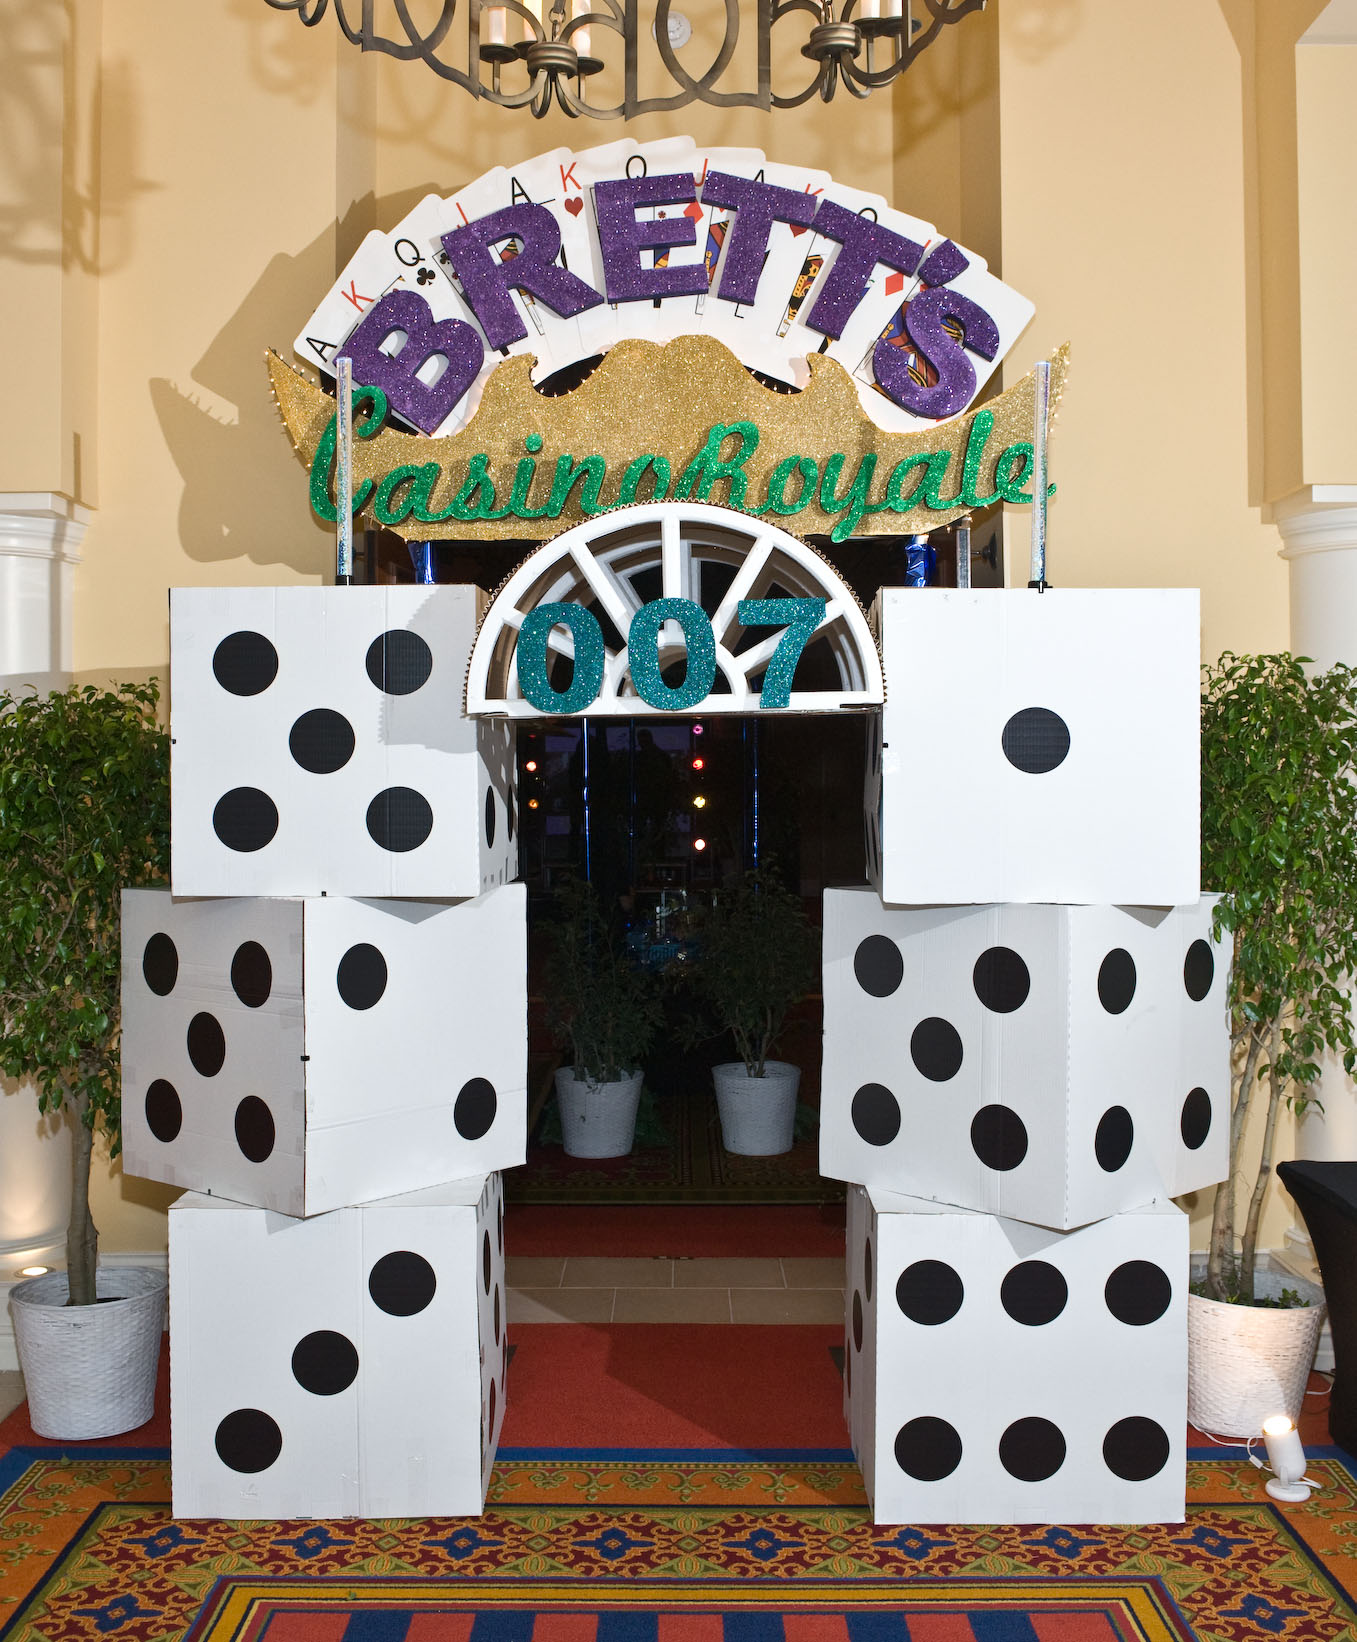 Casino Theme Party Decorations Ideas Part - 31: Cardboard Dice Casino Party Entrance Decor